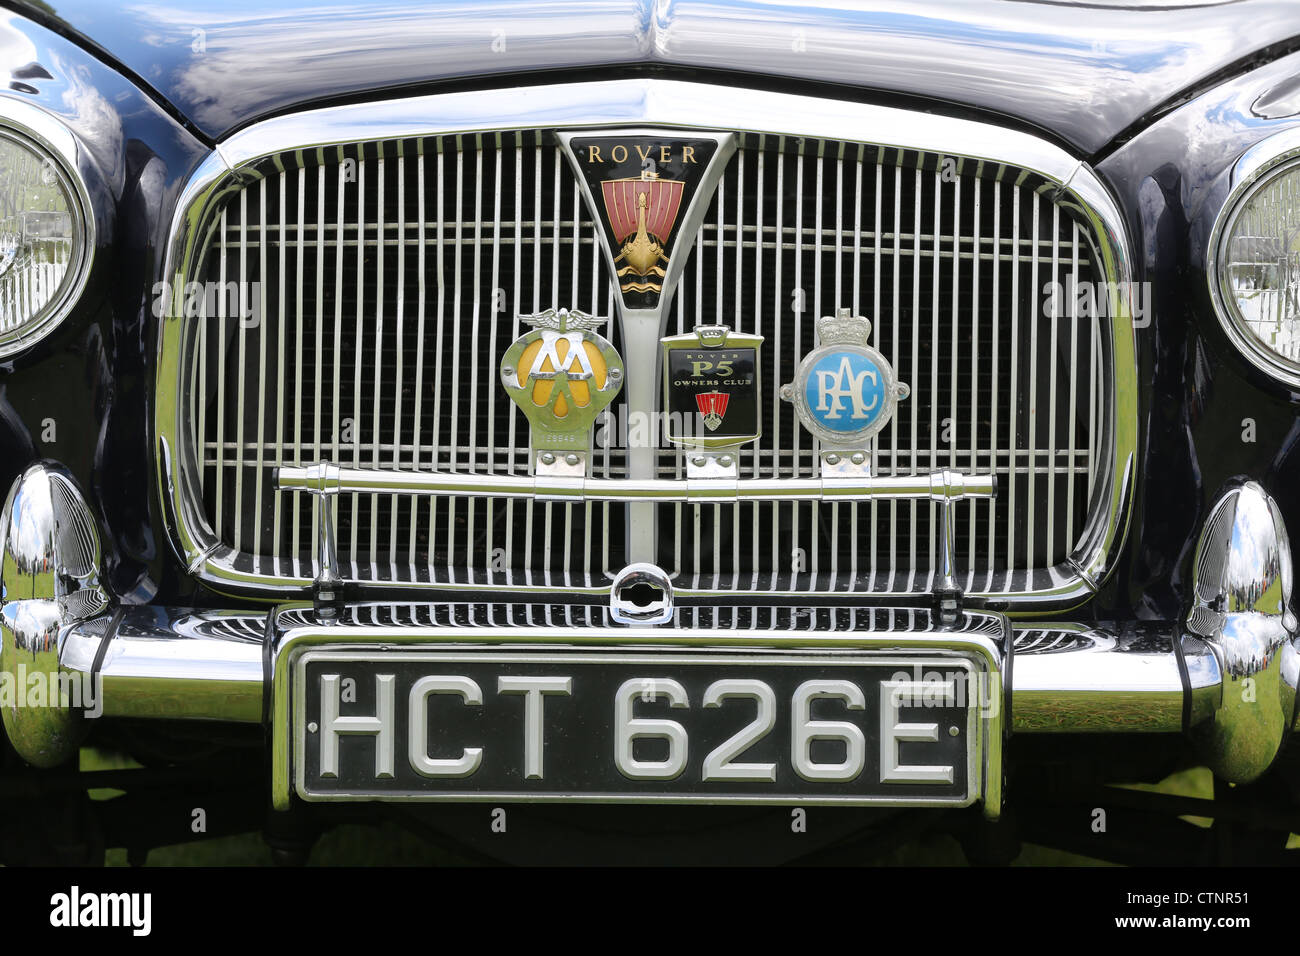 Rover Vintage Car High Resolution Stock Photography And Images Alamy